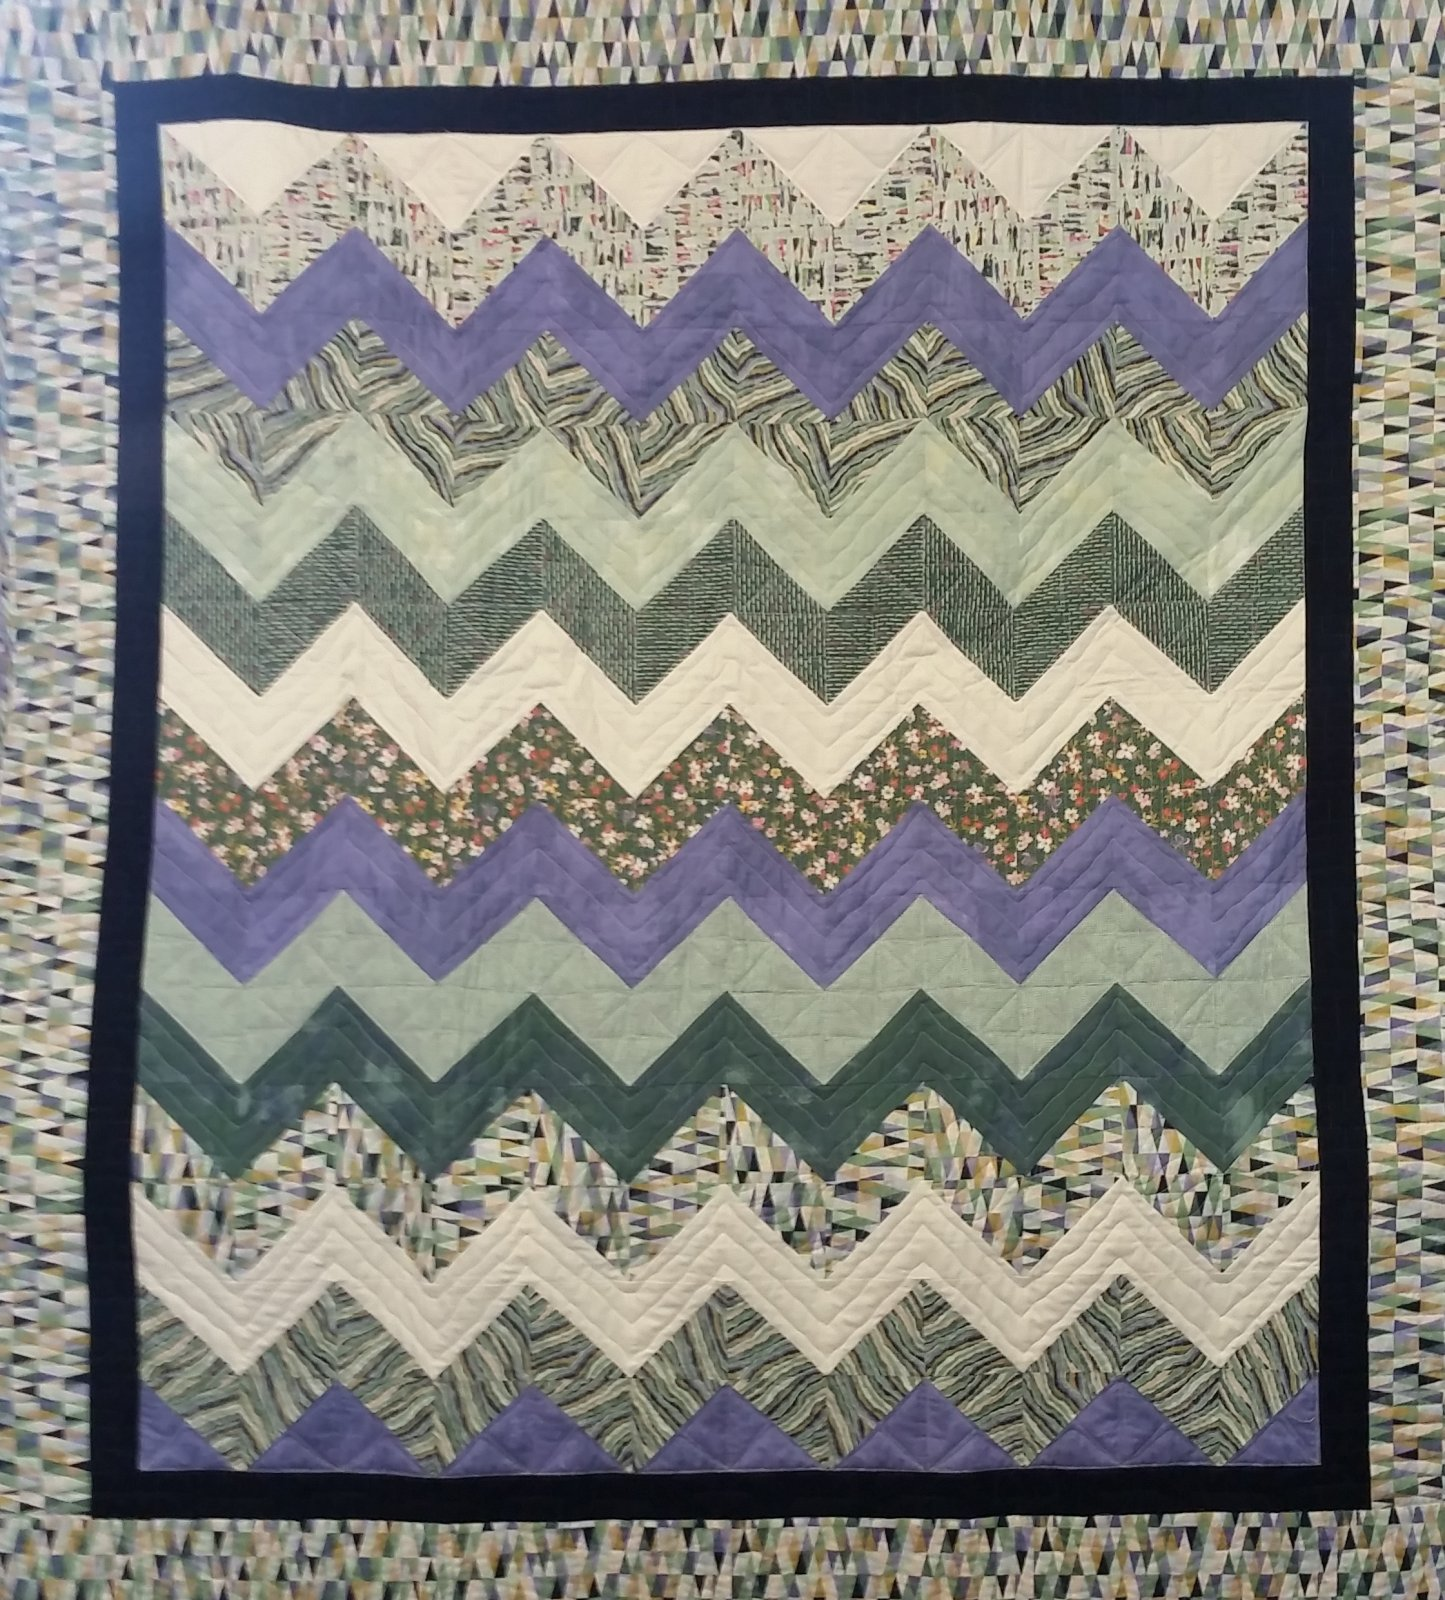 Blackfords beauty quilt kits #12